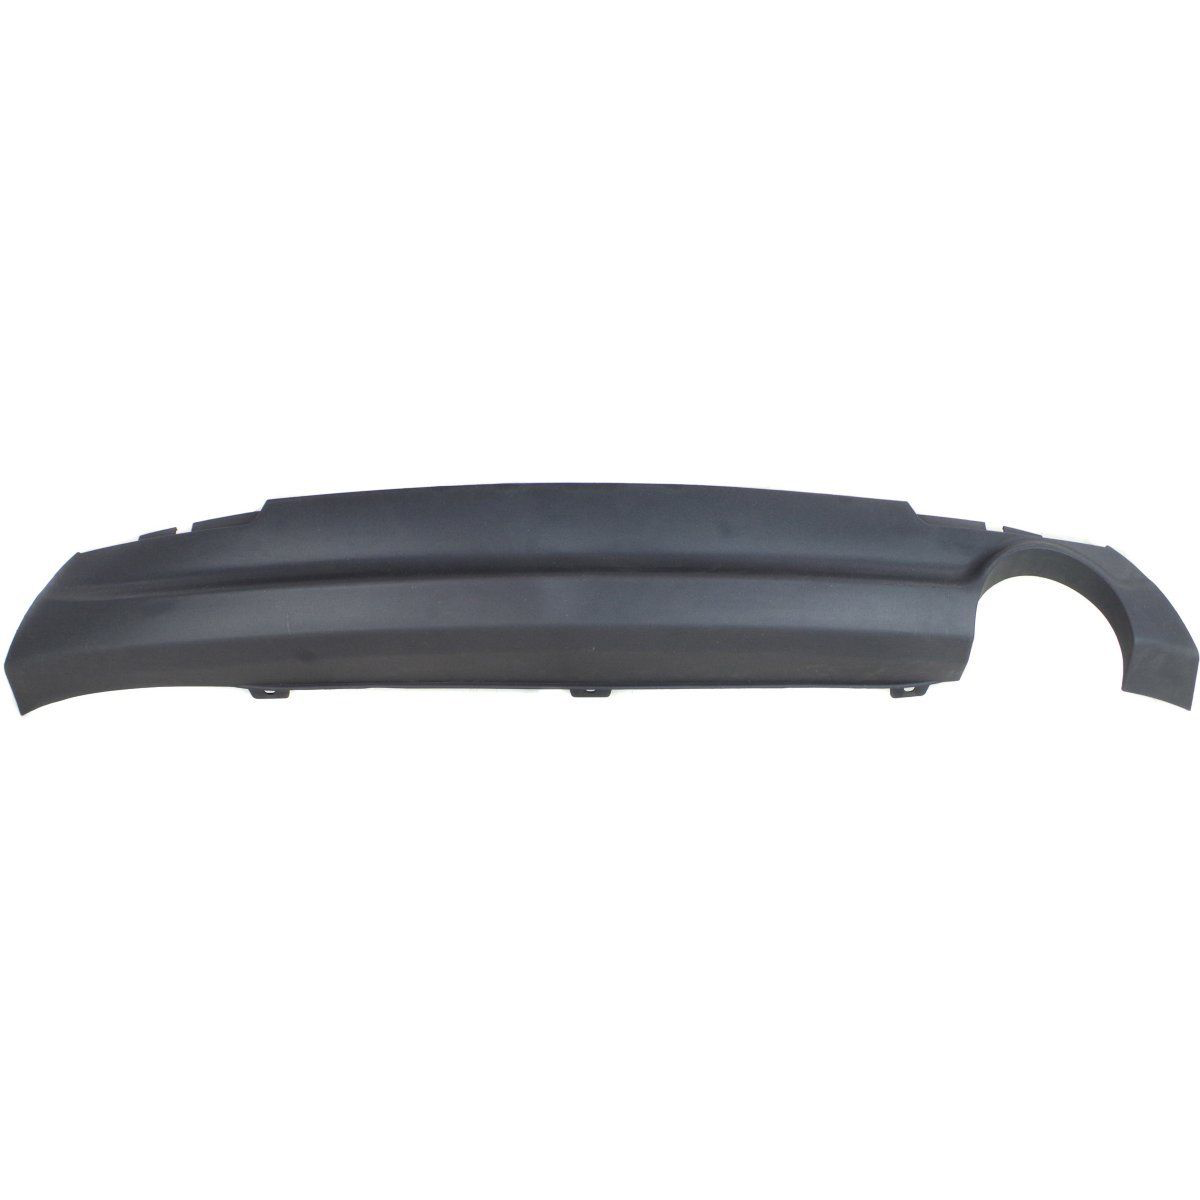 2010-2013 KIA FORTE Rear Bumper Cover Lower SX  Sedan KI1115101 1120 Painted to Match